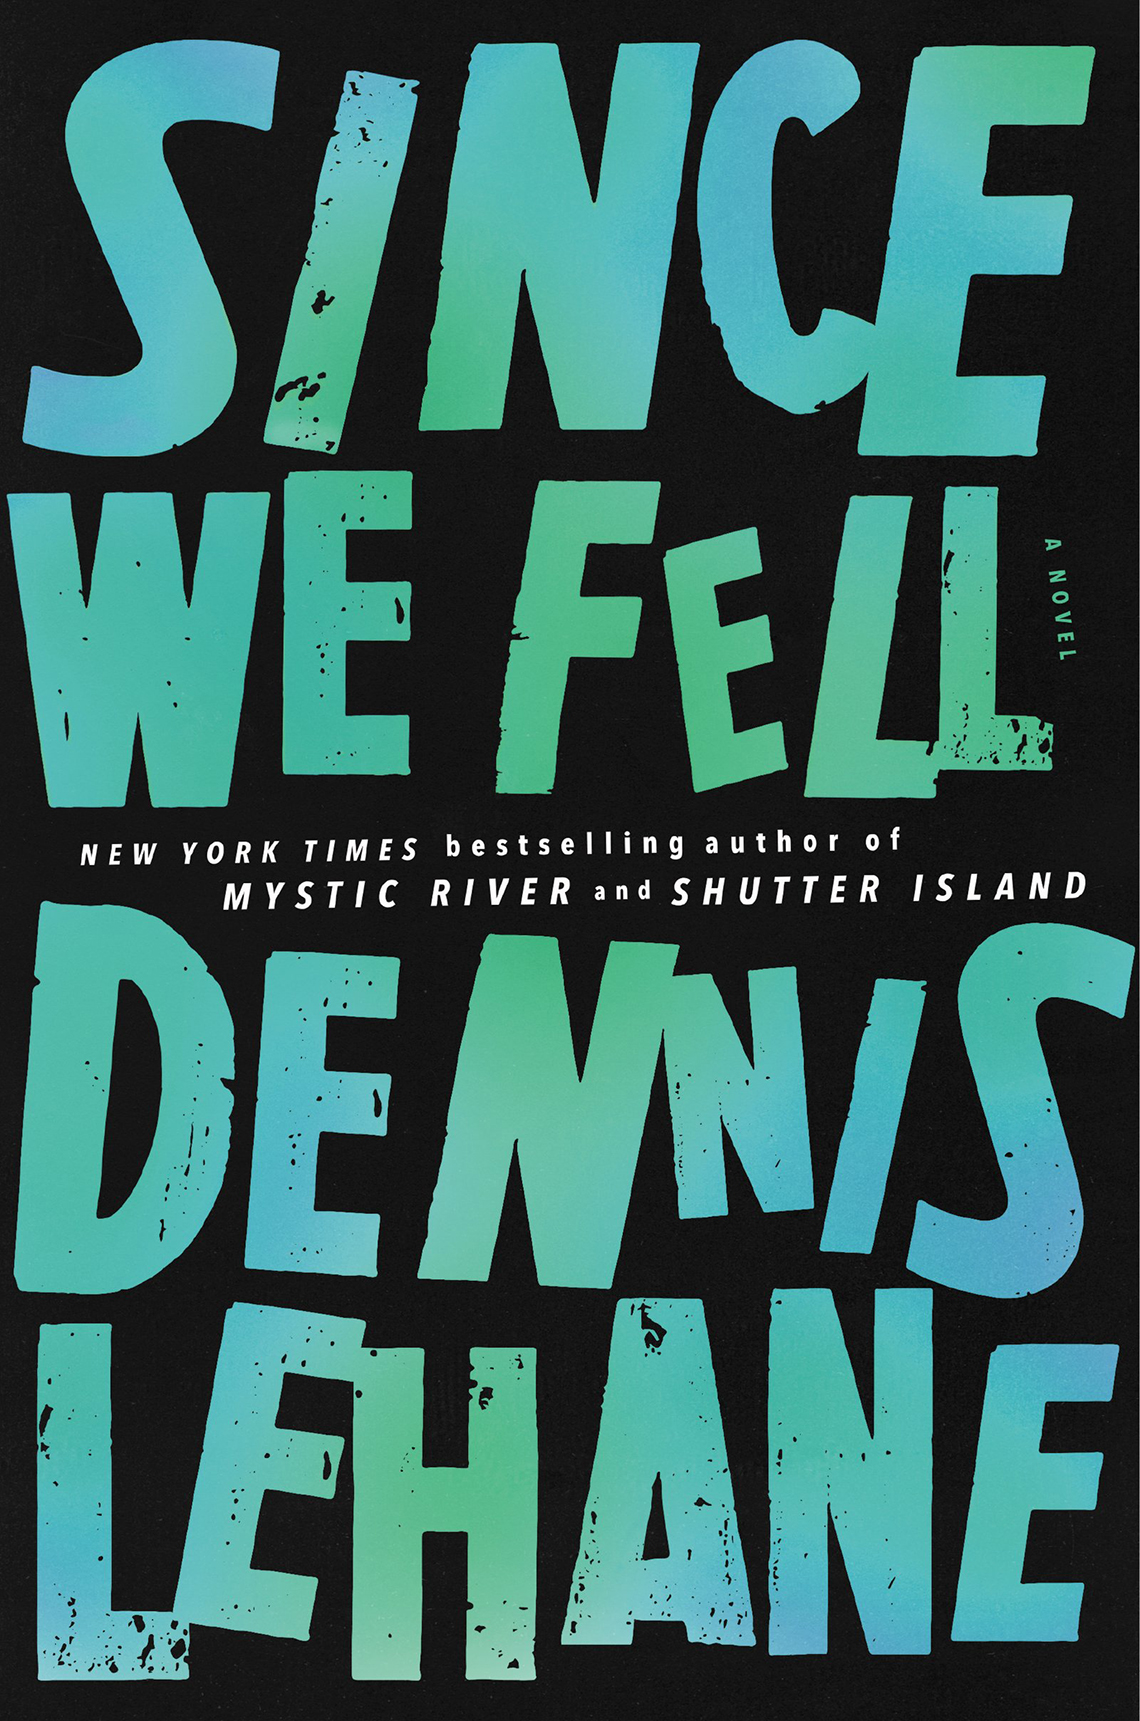 Since We Fell, by Dennis Lehane